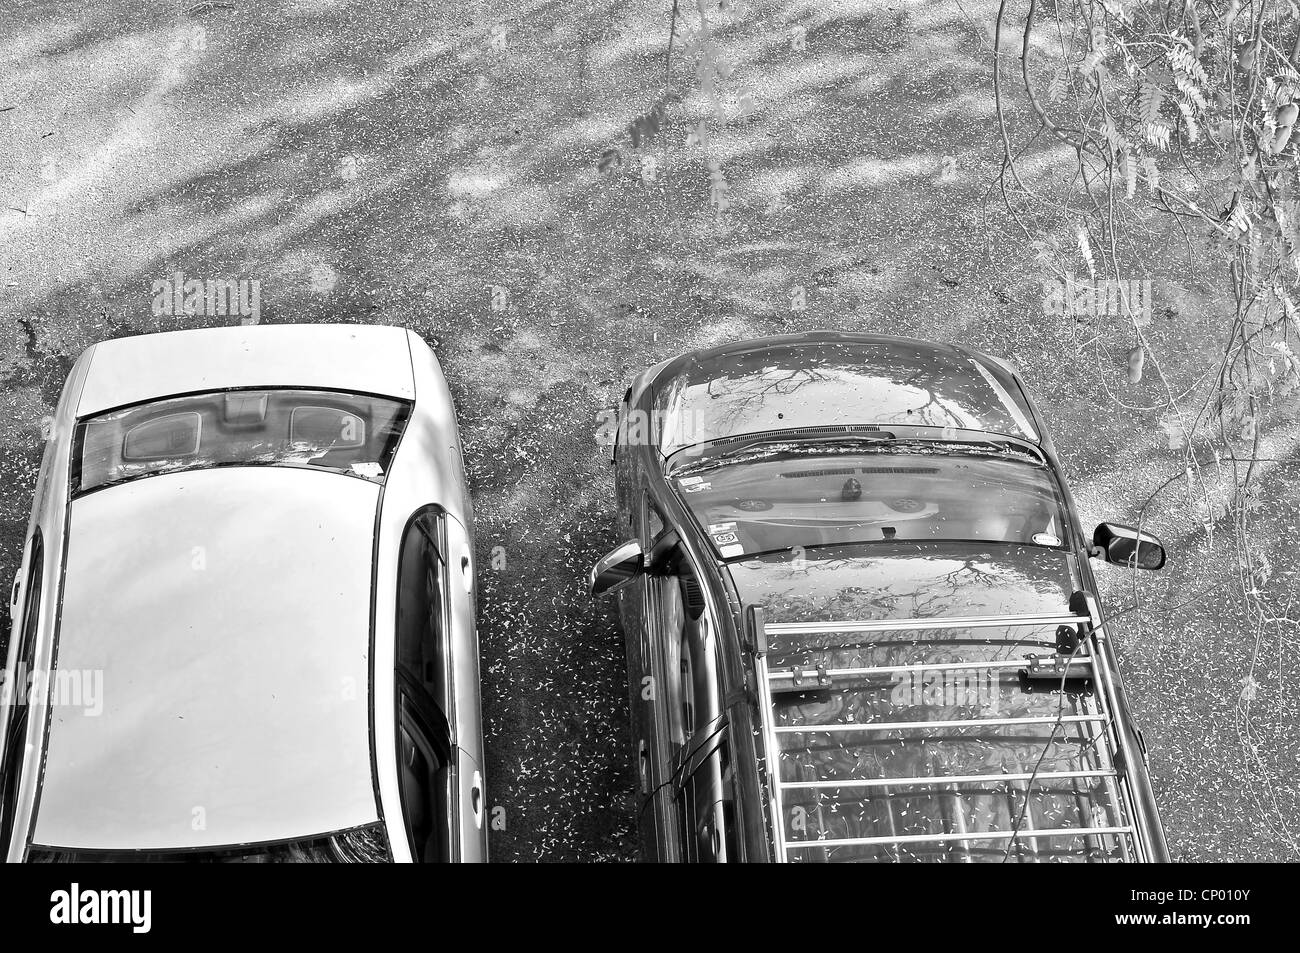 Two car parked - Stock Image